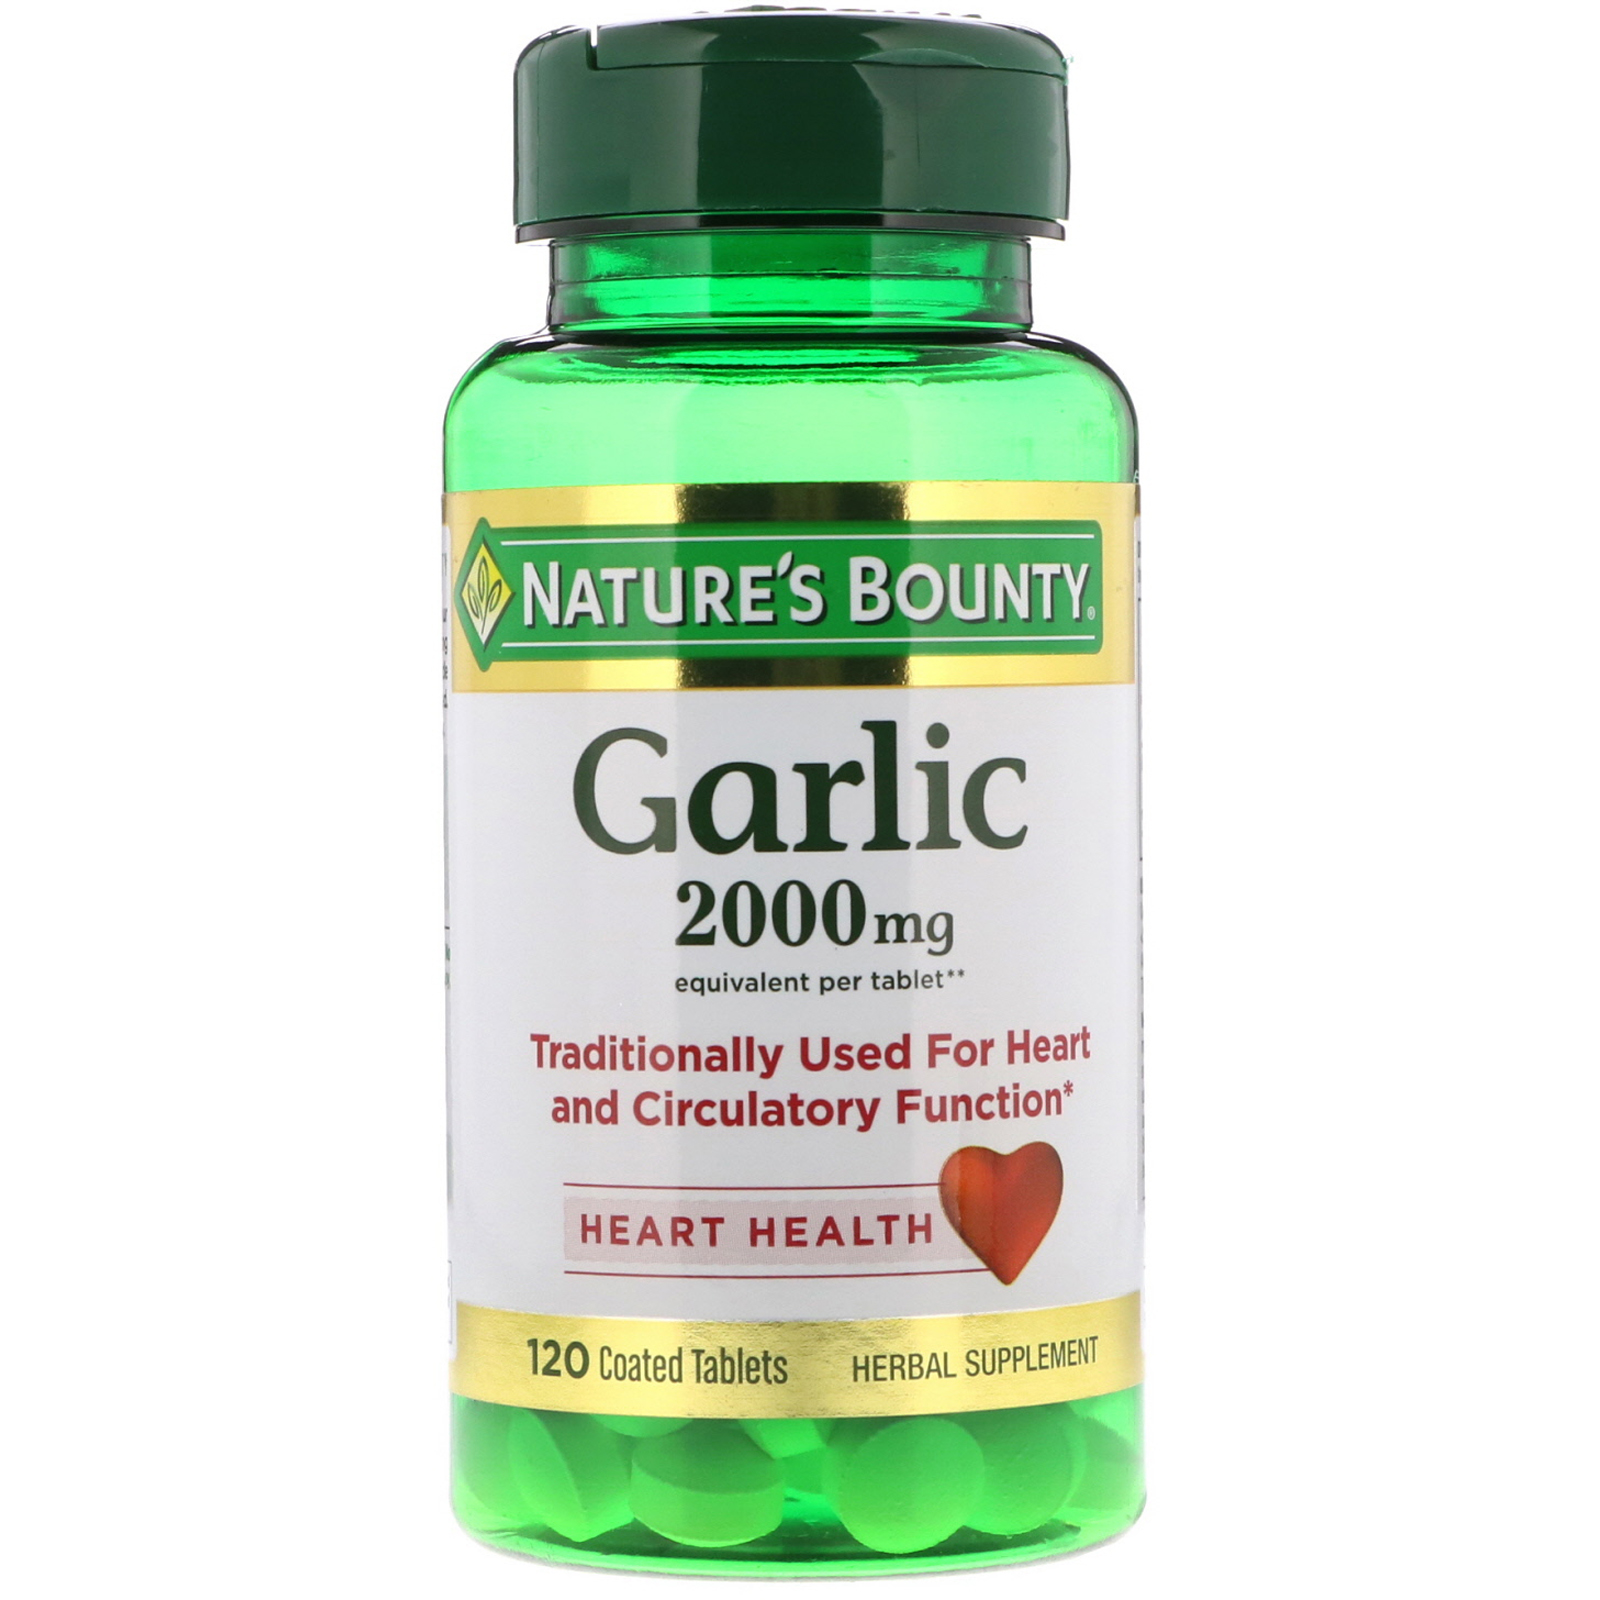 nature's bounty, garlic, 2,000 mg, 120 coated tablets - iherb